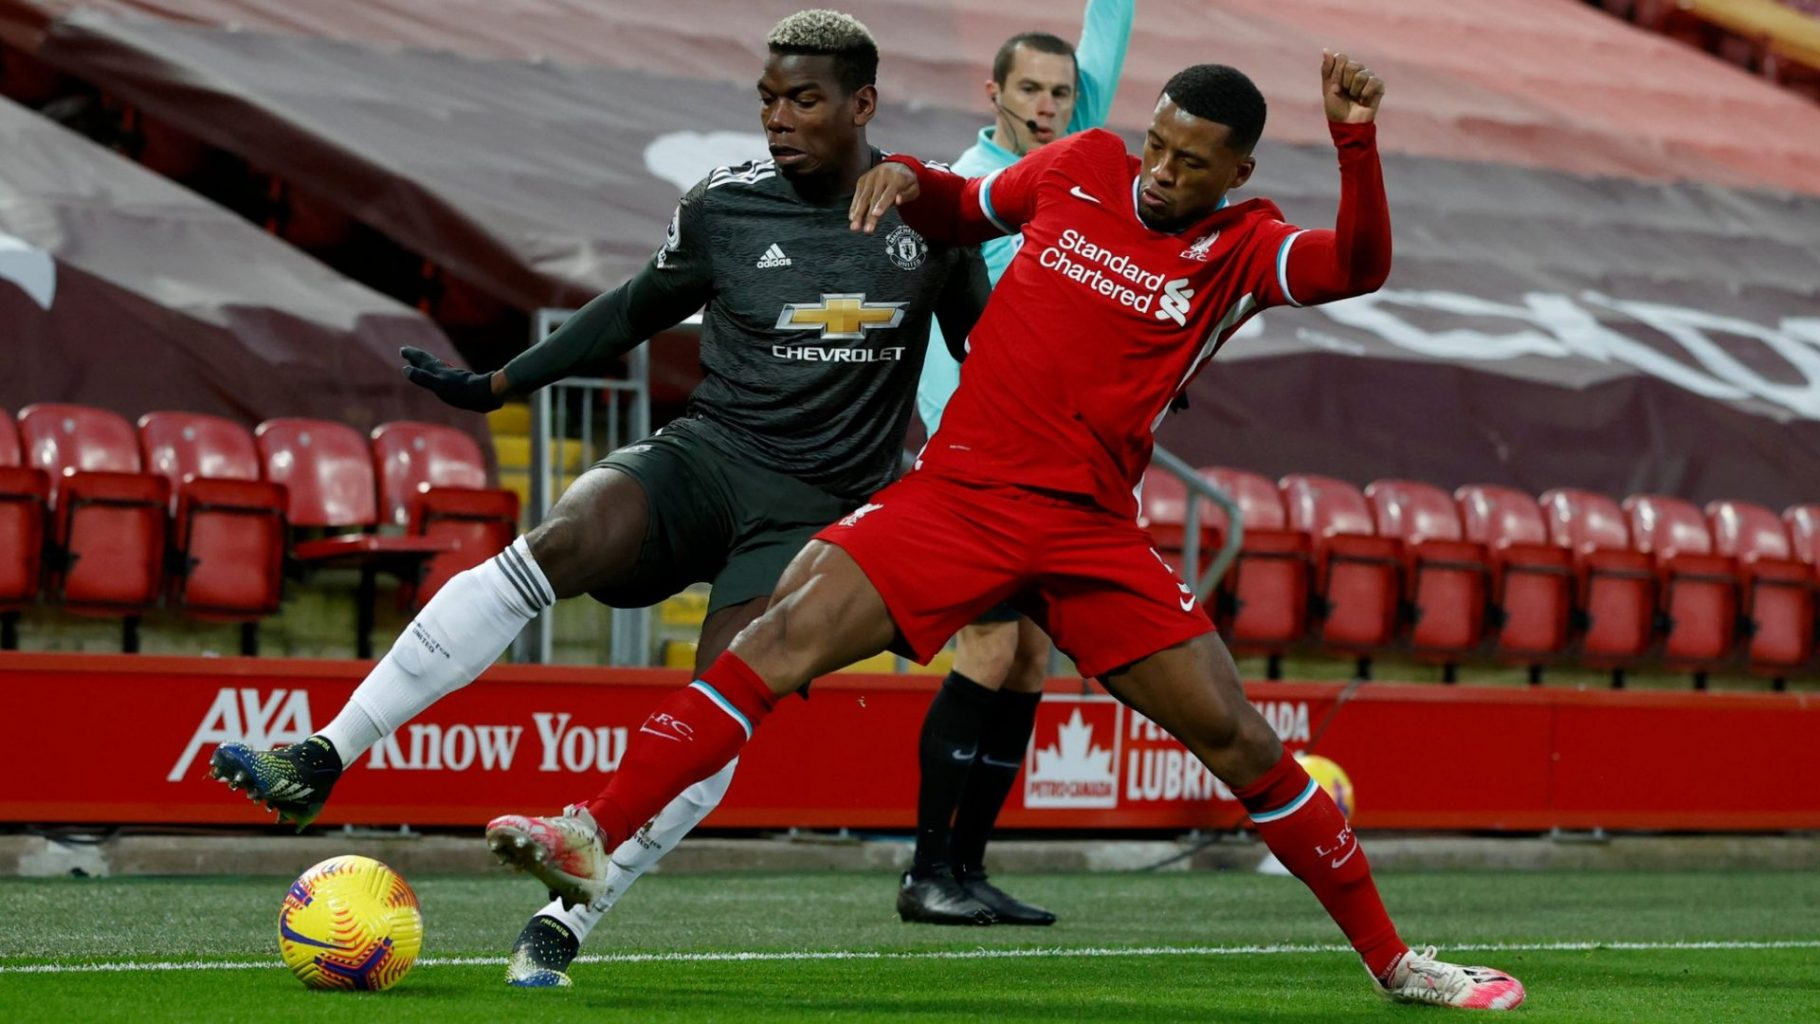 Liverpool 0-0 Manchester United: Anfield Stalemate As Title Race Clash Fails To Spark